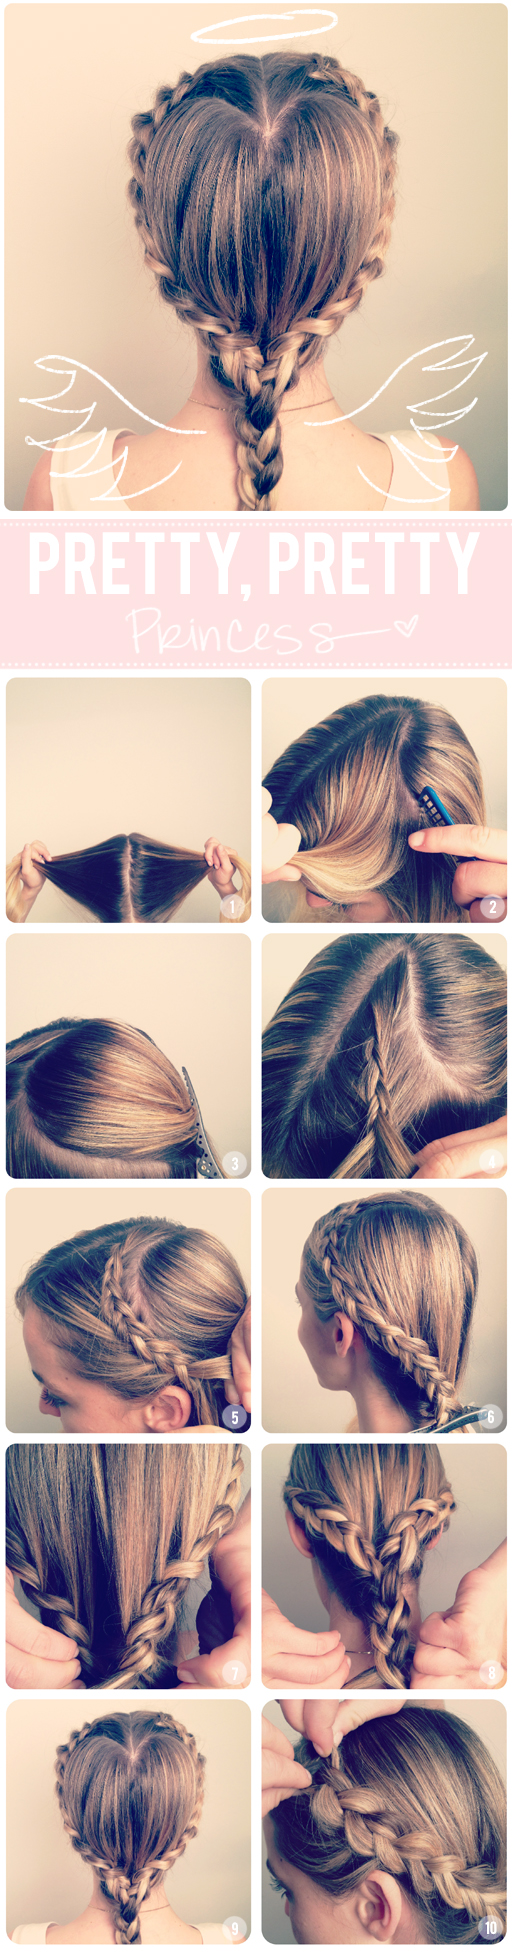 Cute Easy Hairstyles Tumblr